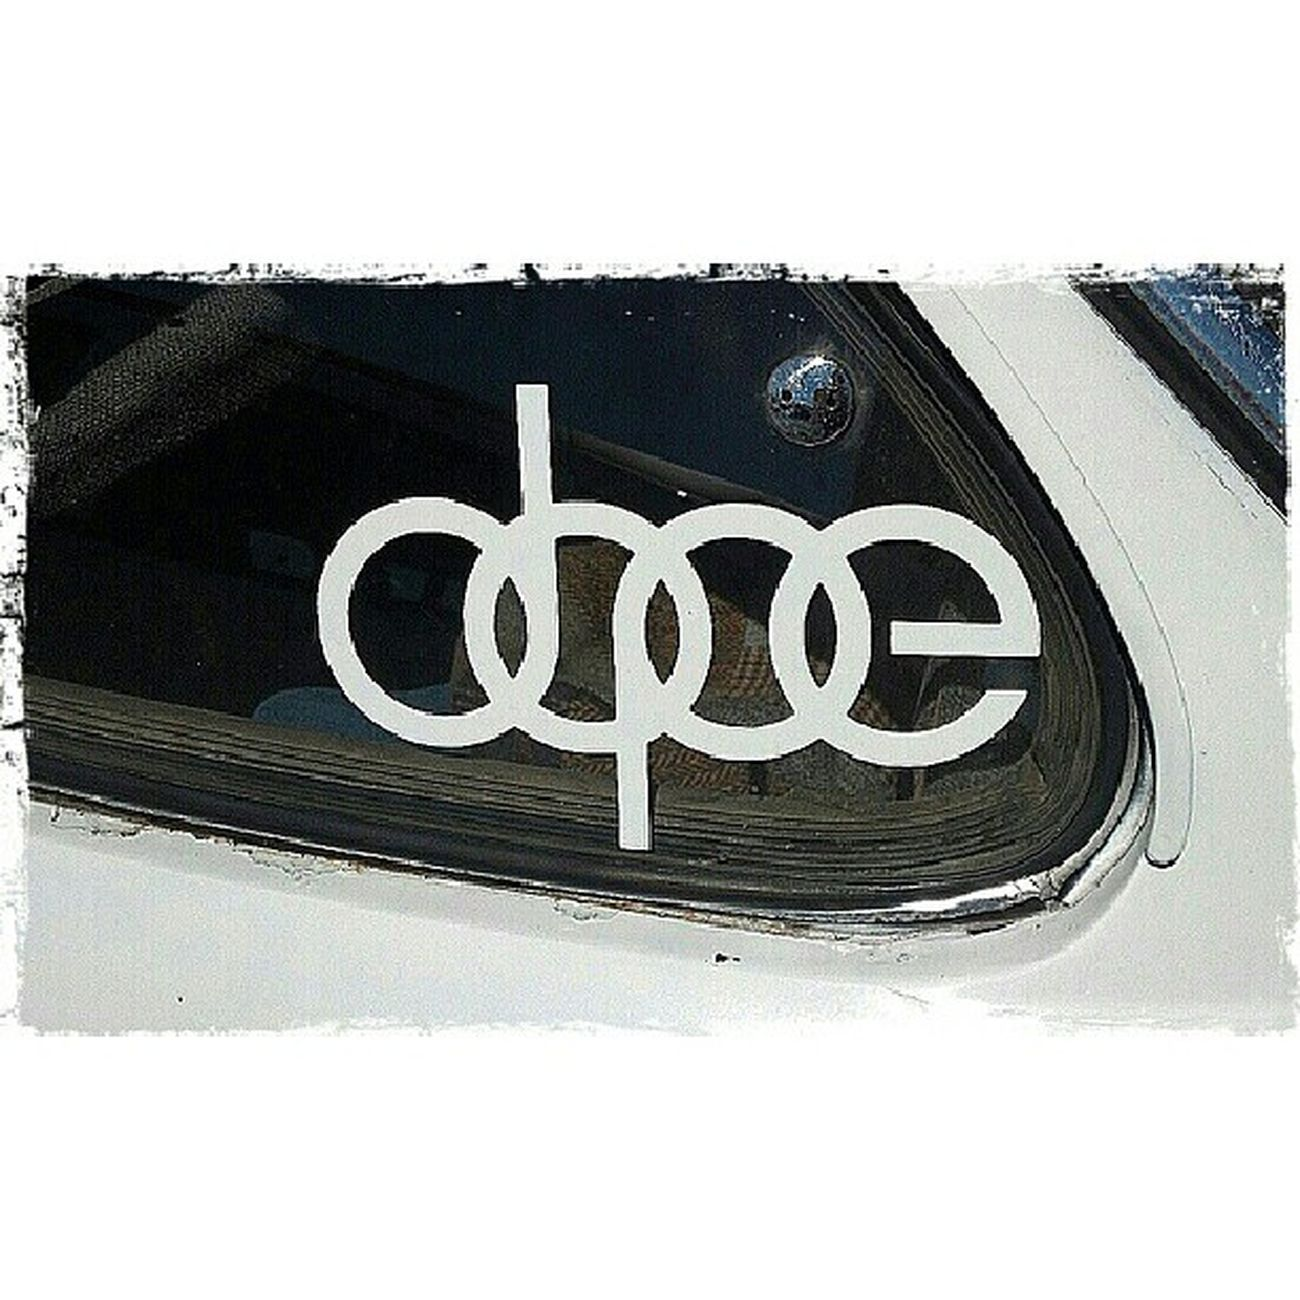 Dope sticker on an old Karmann Ghia. DOPE Sticker Old Cars Karmannghia Portorchardwashington Picoftheday Pictureoftheday DroidRazr